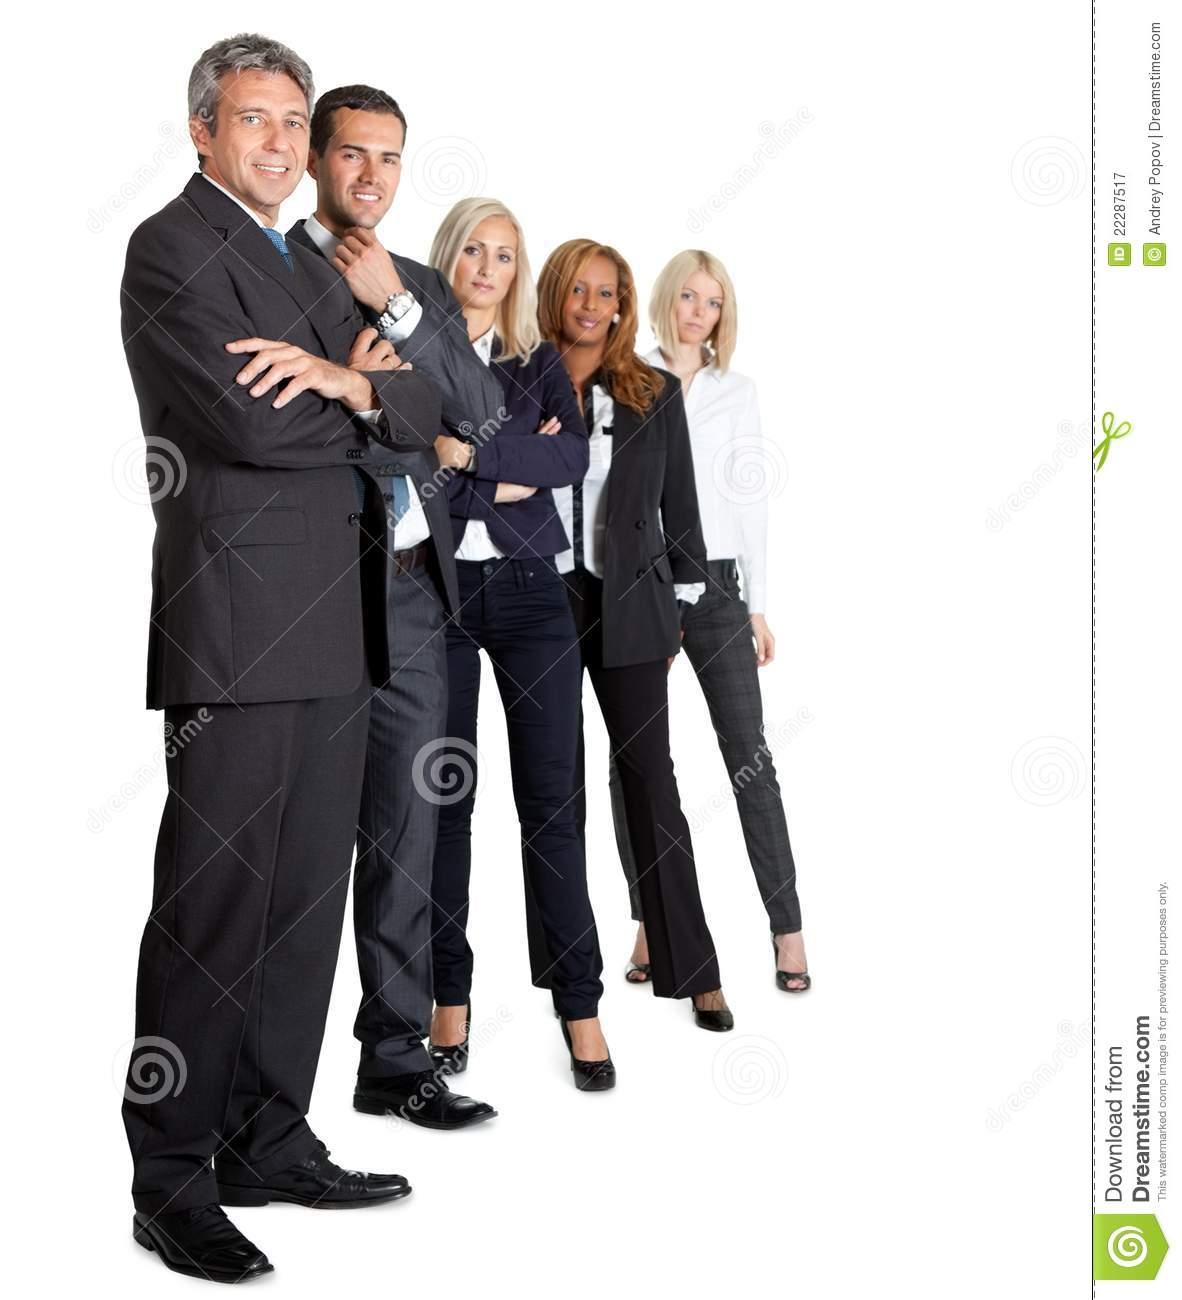 Diverse Business Group Standing Together Royalty Free